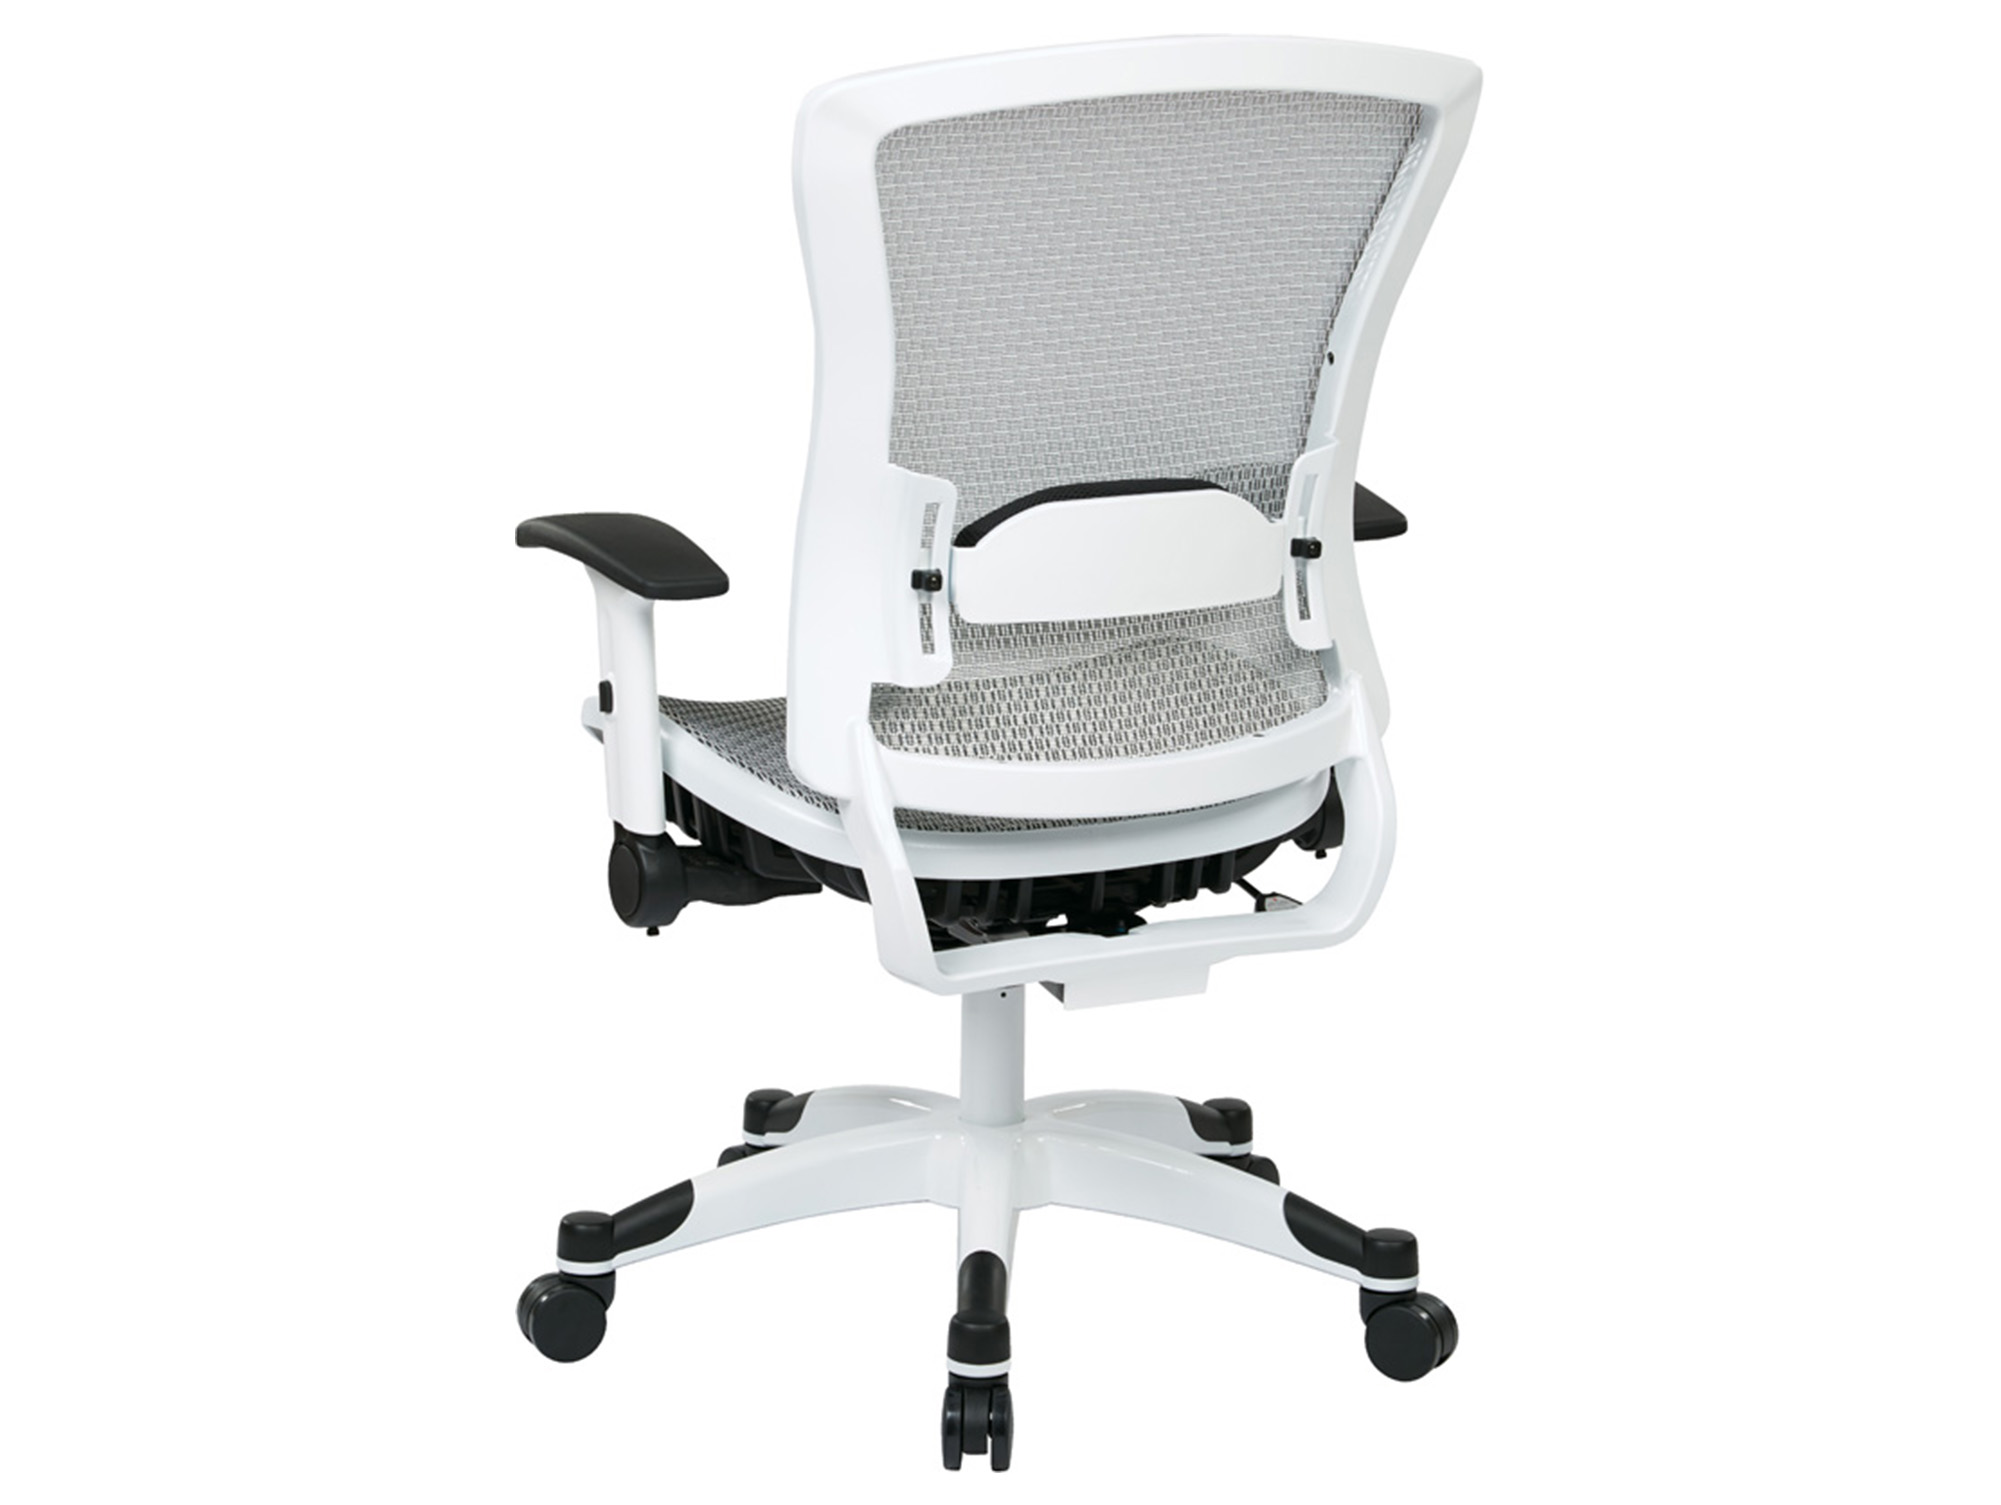 Ergonomic Seating fice Task Chairs Chairs For fice